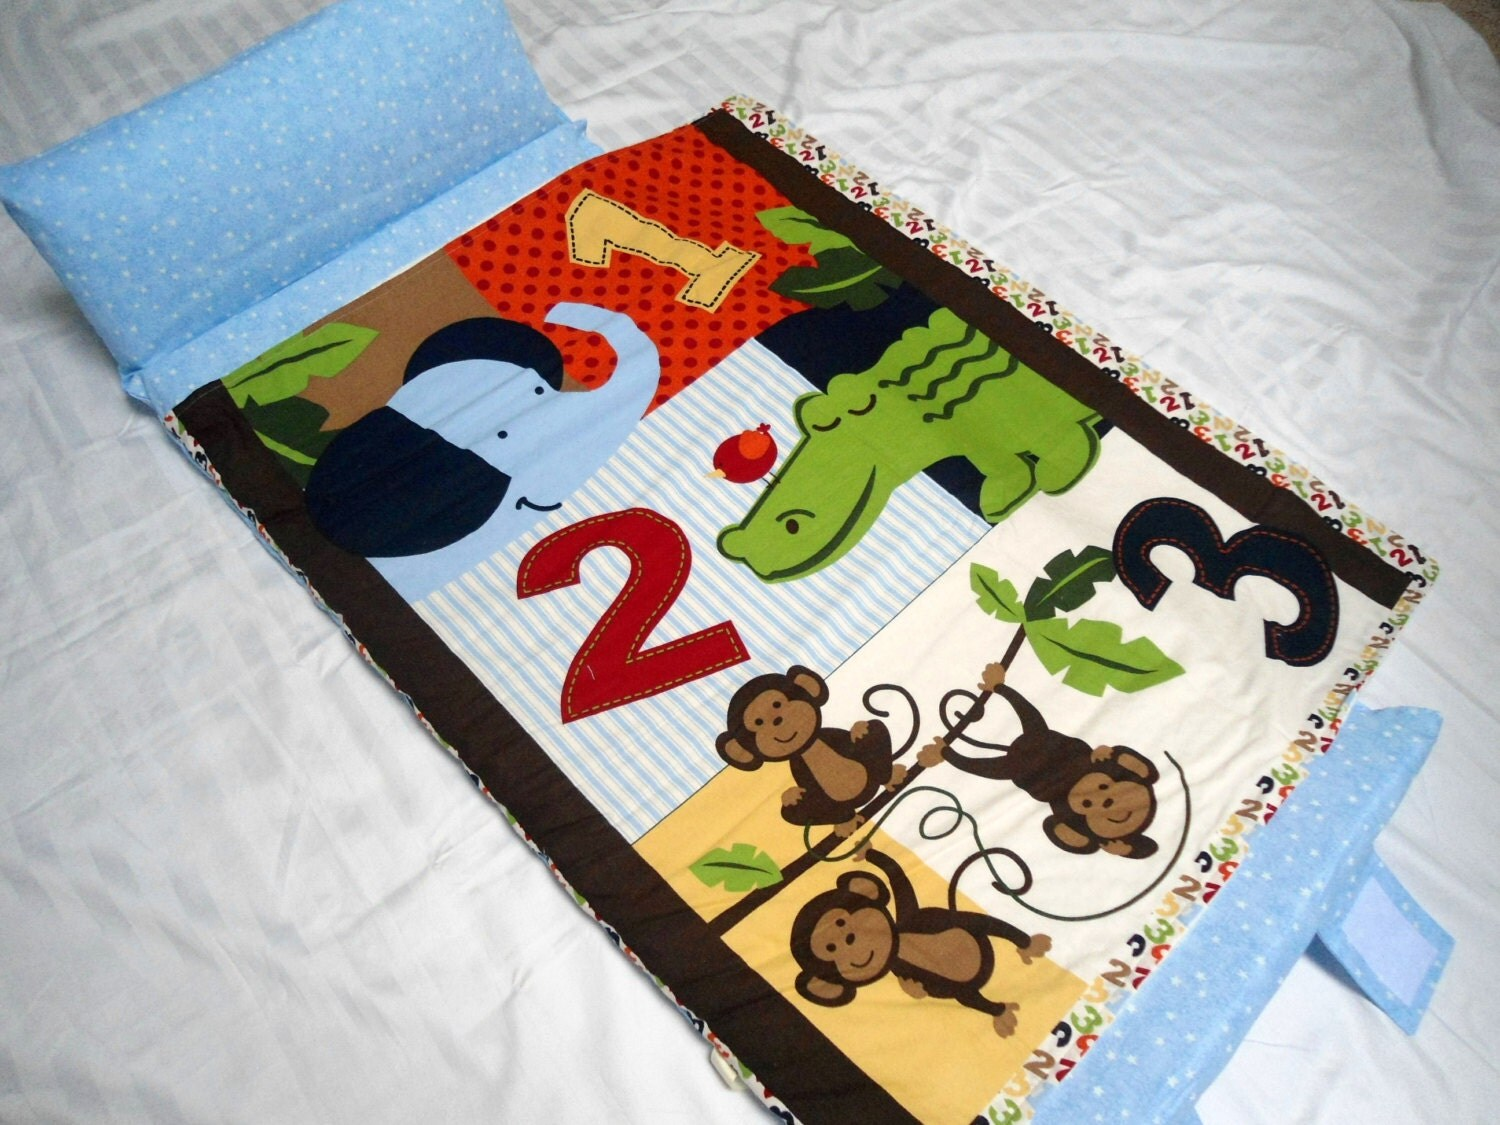 Floor Pillows For Daycare : Best Nap Mats For Daycare. Mats. Daycare Nap Mats Wholesale Egycalendar. Nap Time Mat. Best ...